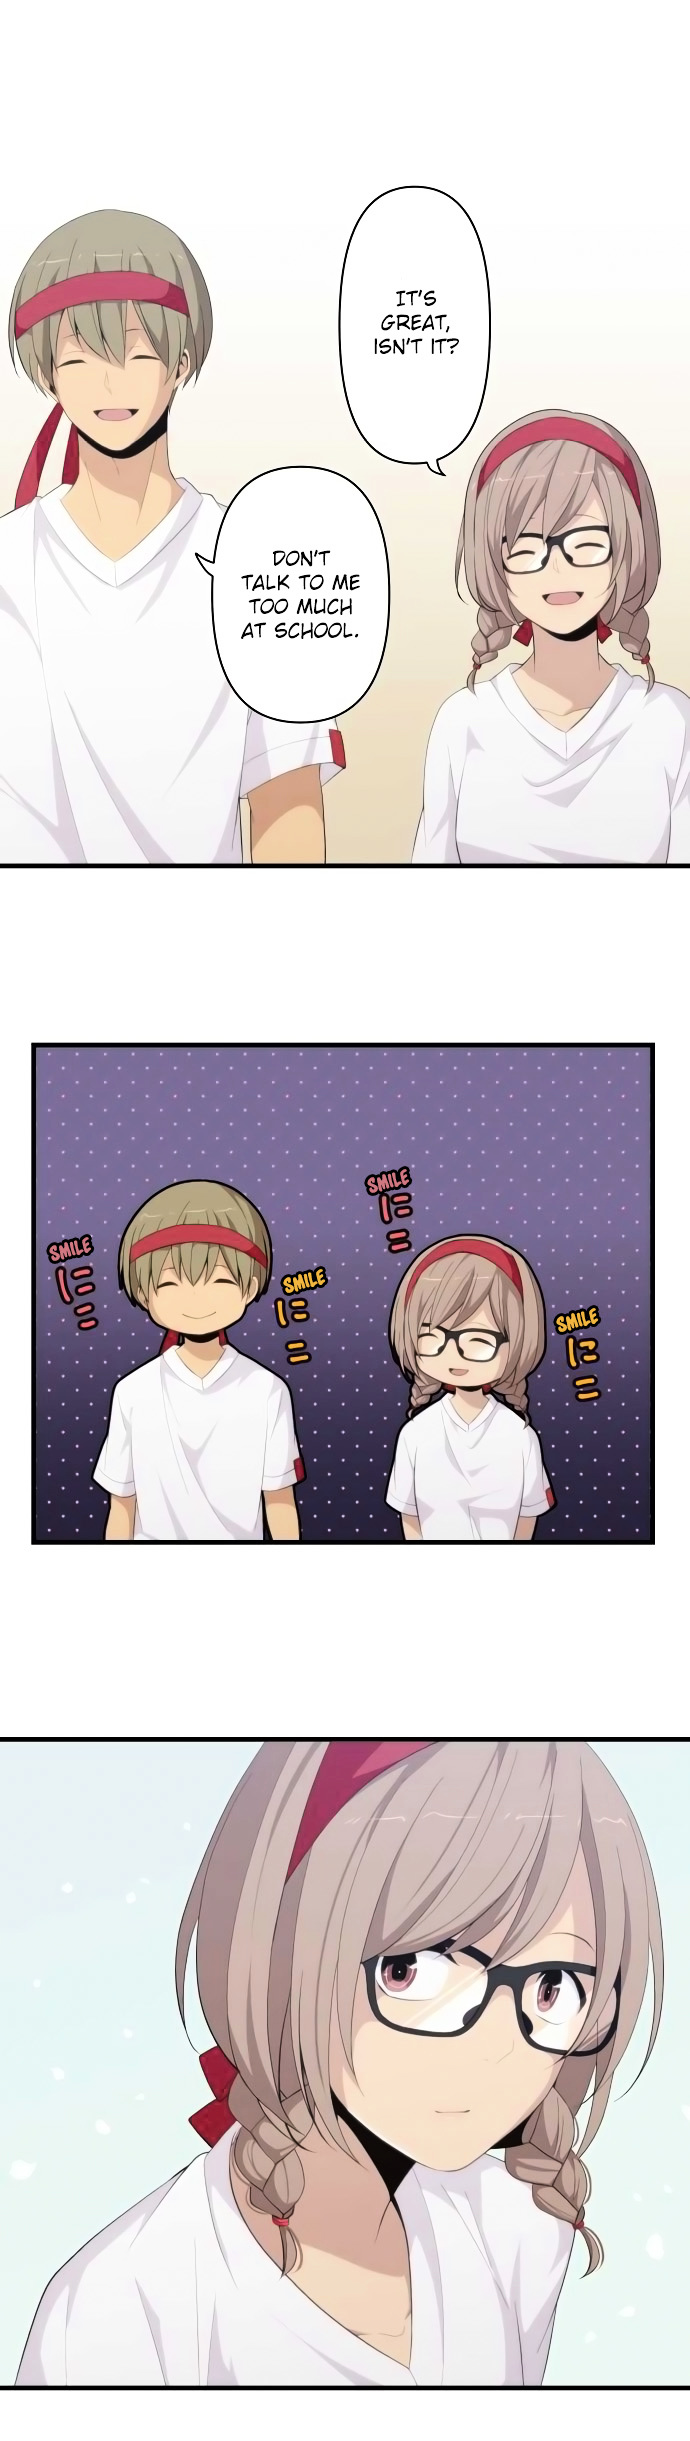 ReLIFE Chapter 149  Online Free Manga Read Image 12